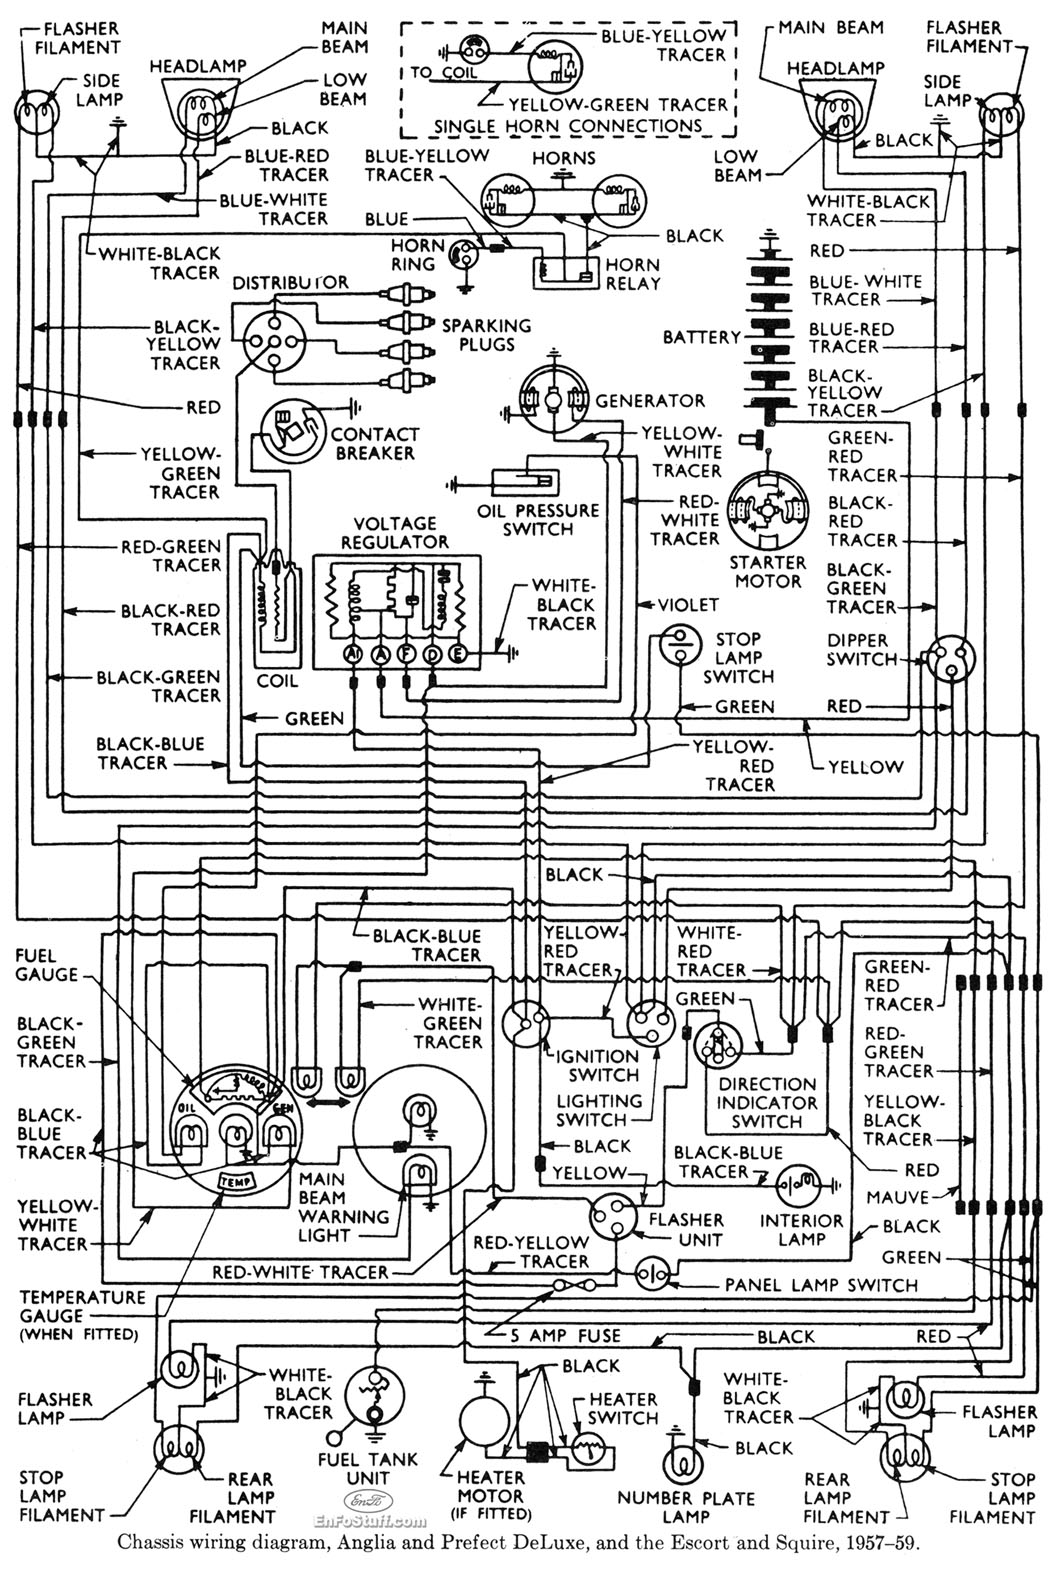 2008 columbia par car wiring diagram 36 wiring diagram club car wiring diagram gas engine columbia par car service manual [ 1061 x 1575 Pixel ]